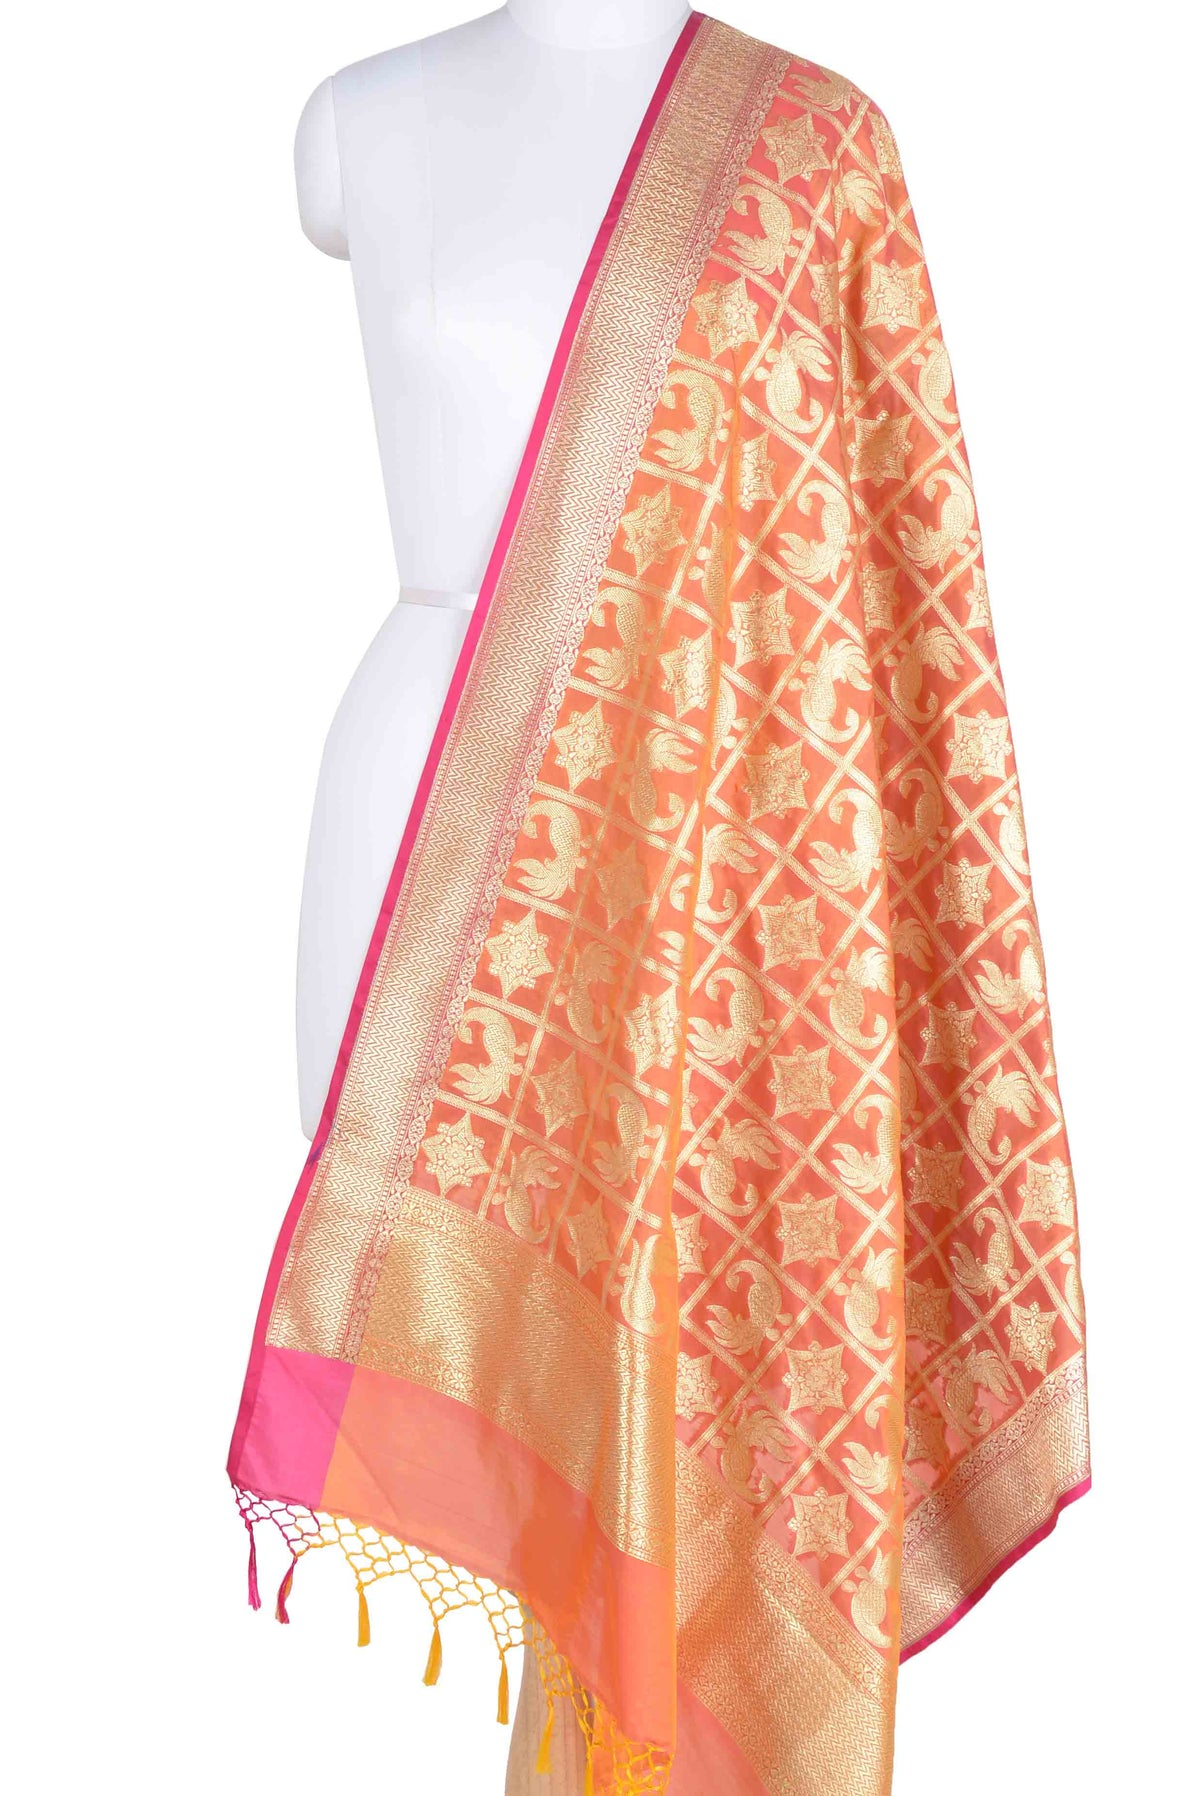 Orange Banarasi Dupatta with peacock and geometric motifs (1) Main